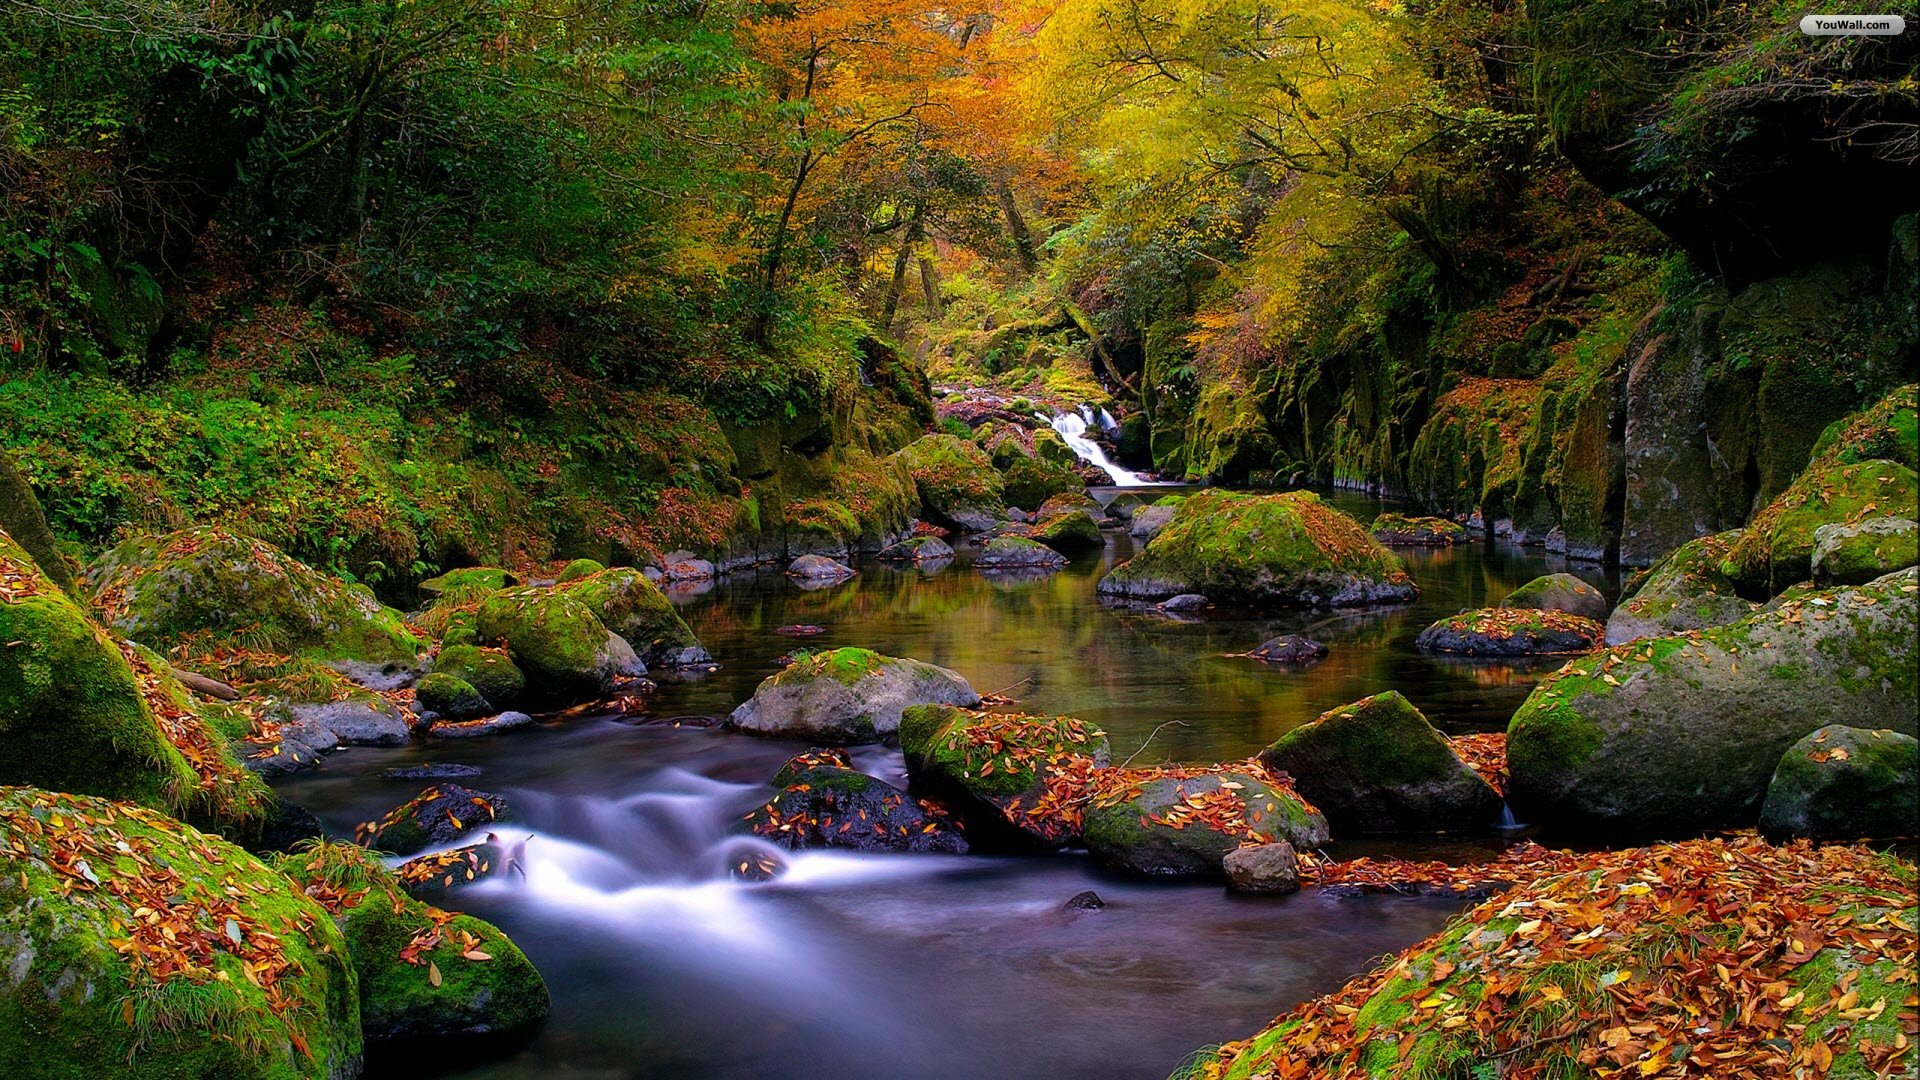 Mountain Spring Landscape Hd Desktop Wallpaper Widescreen